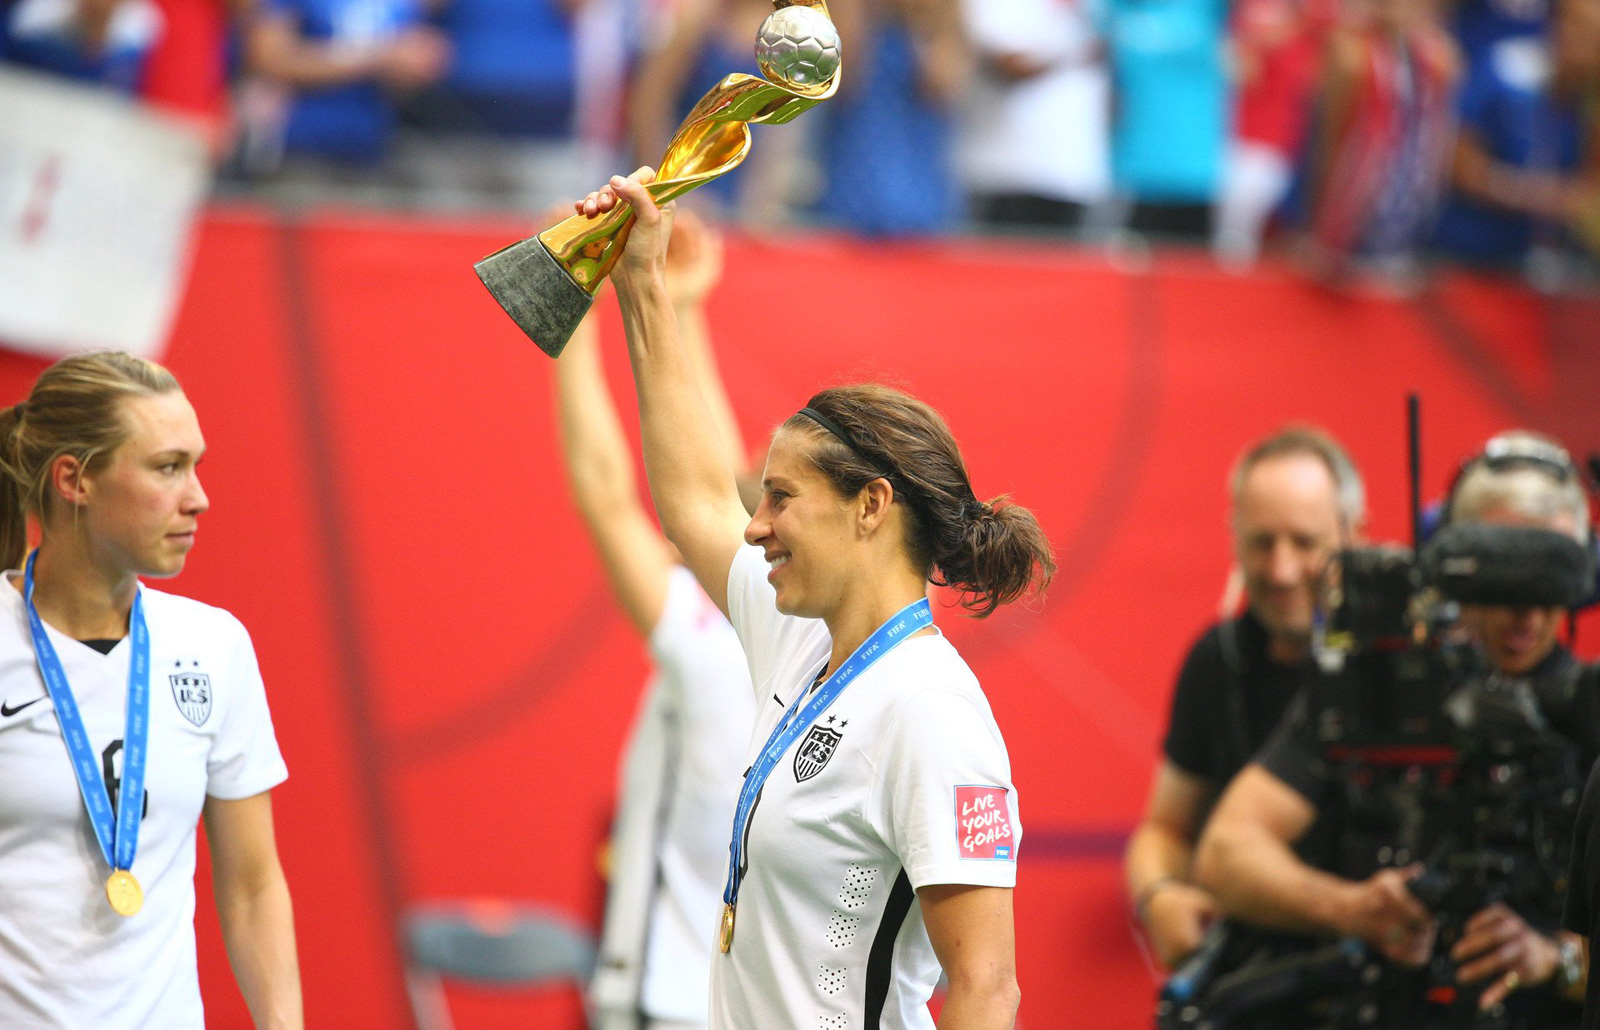 Carli Lloyd lifts the World Cup trophy after leading the USA to a 5-2 win over Japan in the final